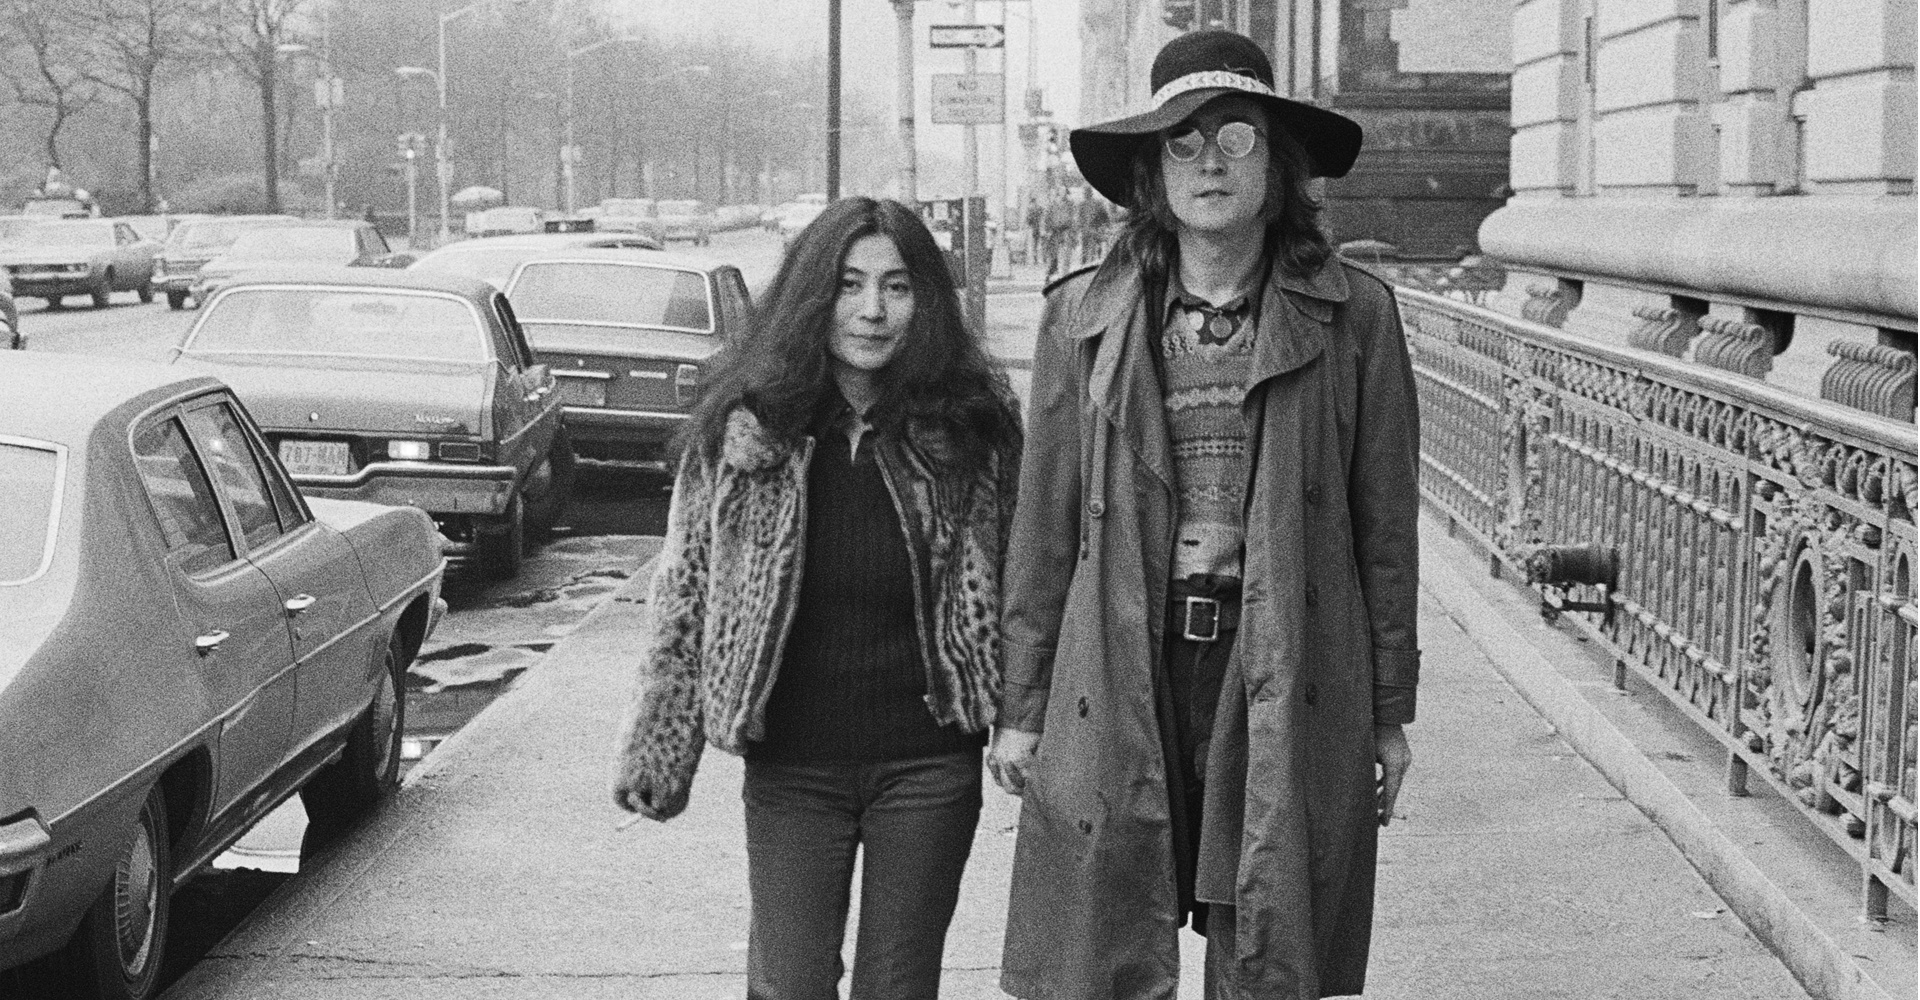 John Lennon & Yoko - New York City, NY